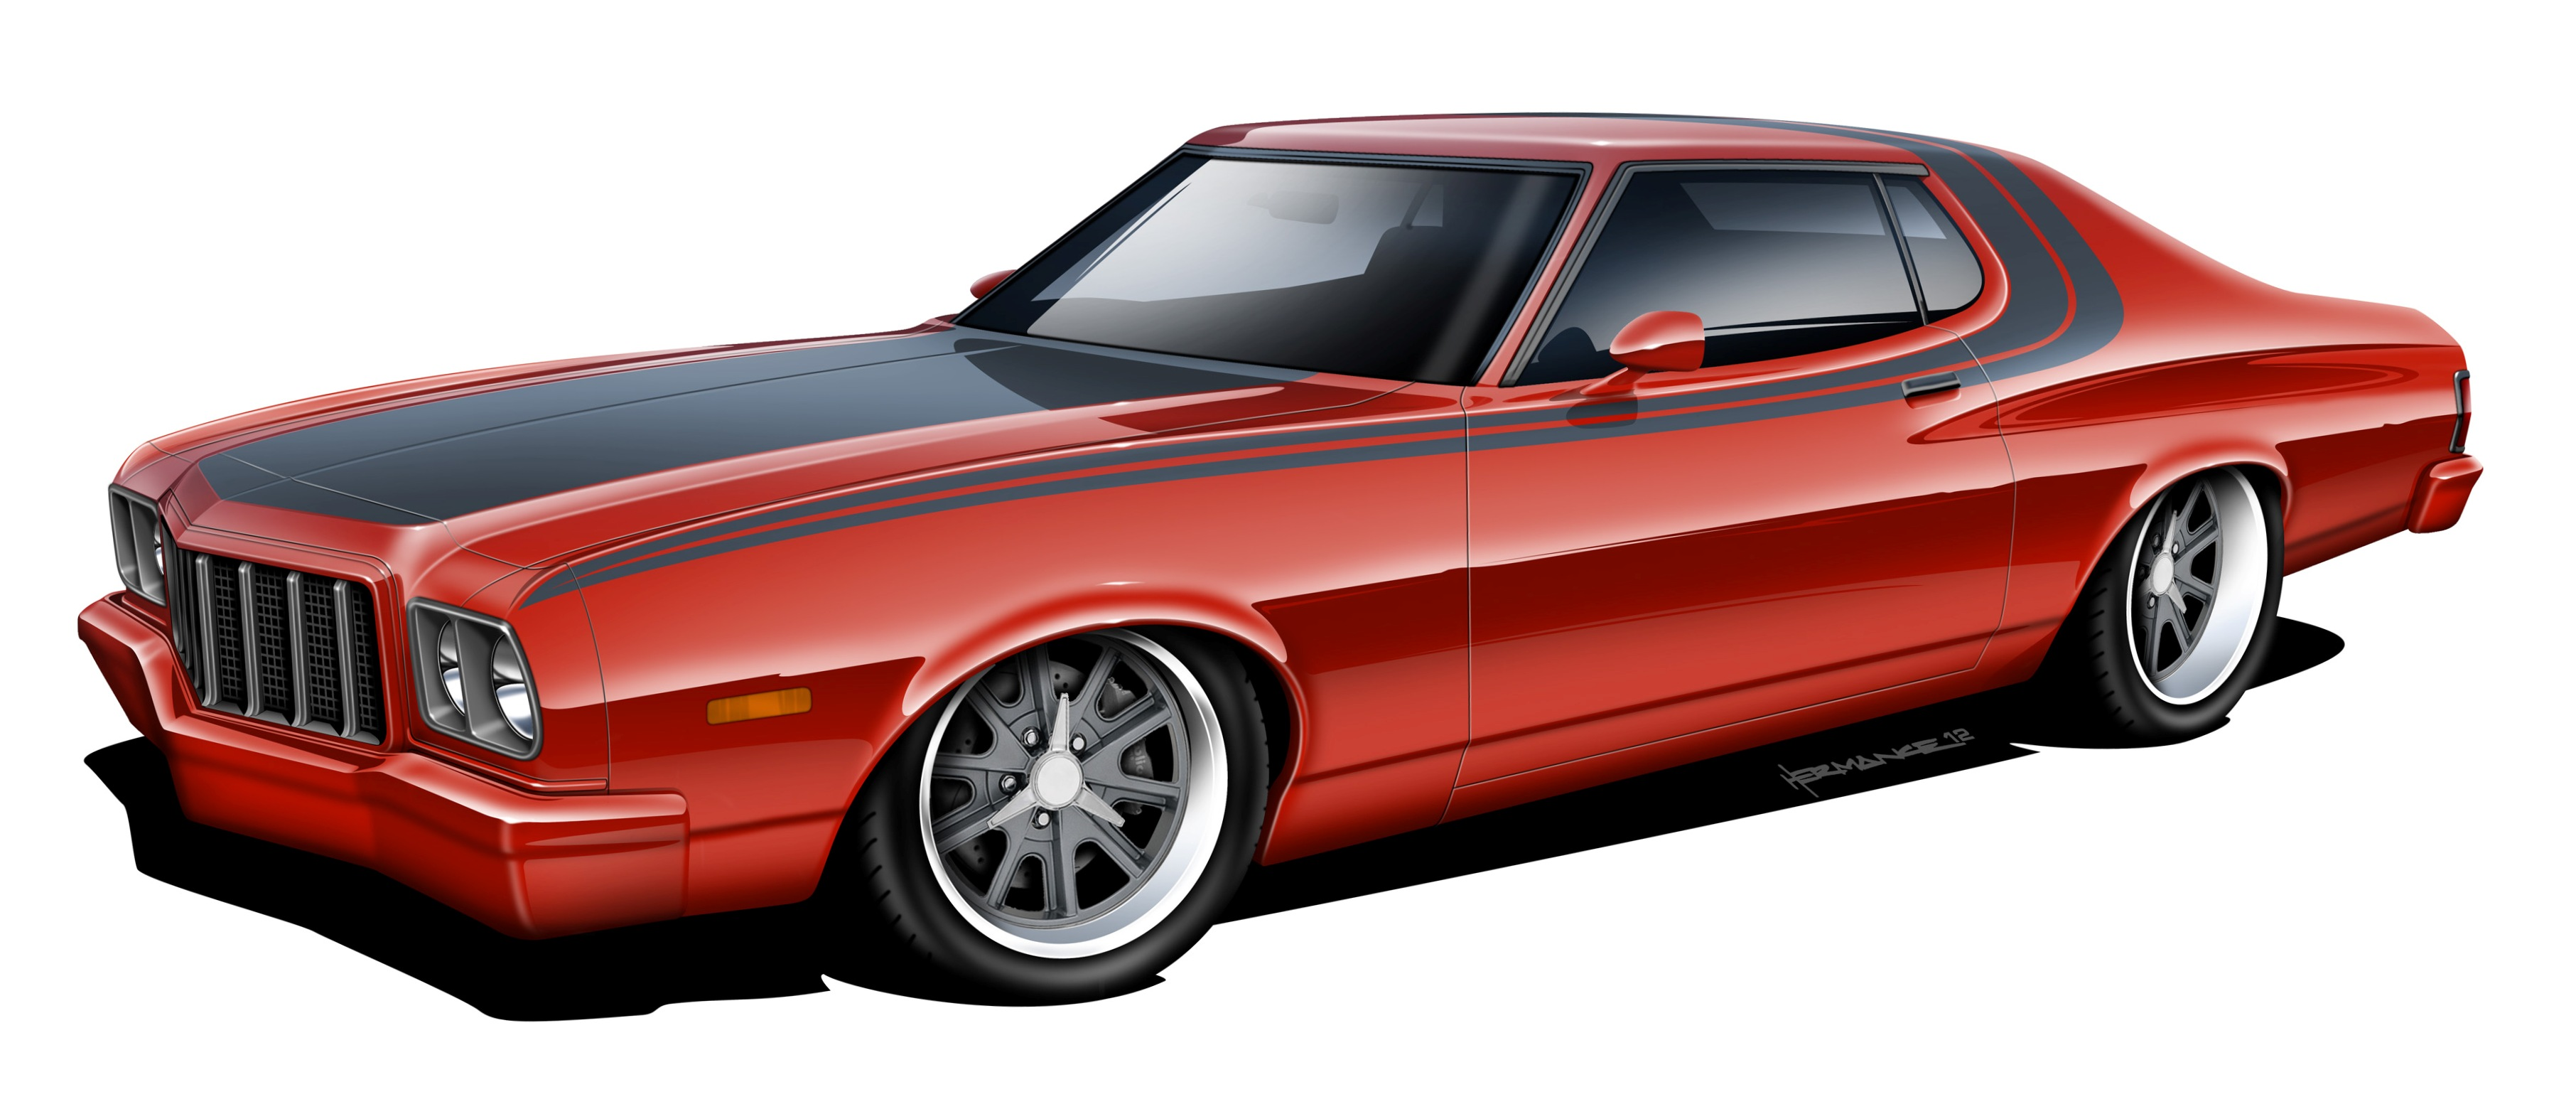 hot rod rods classic muscle 1976 Ford Gran Torino g wallpaper ...